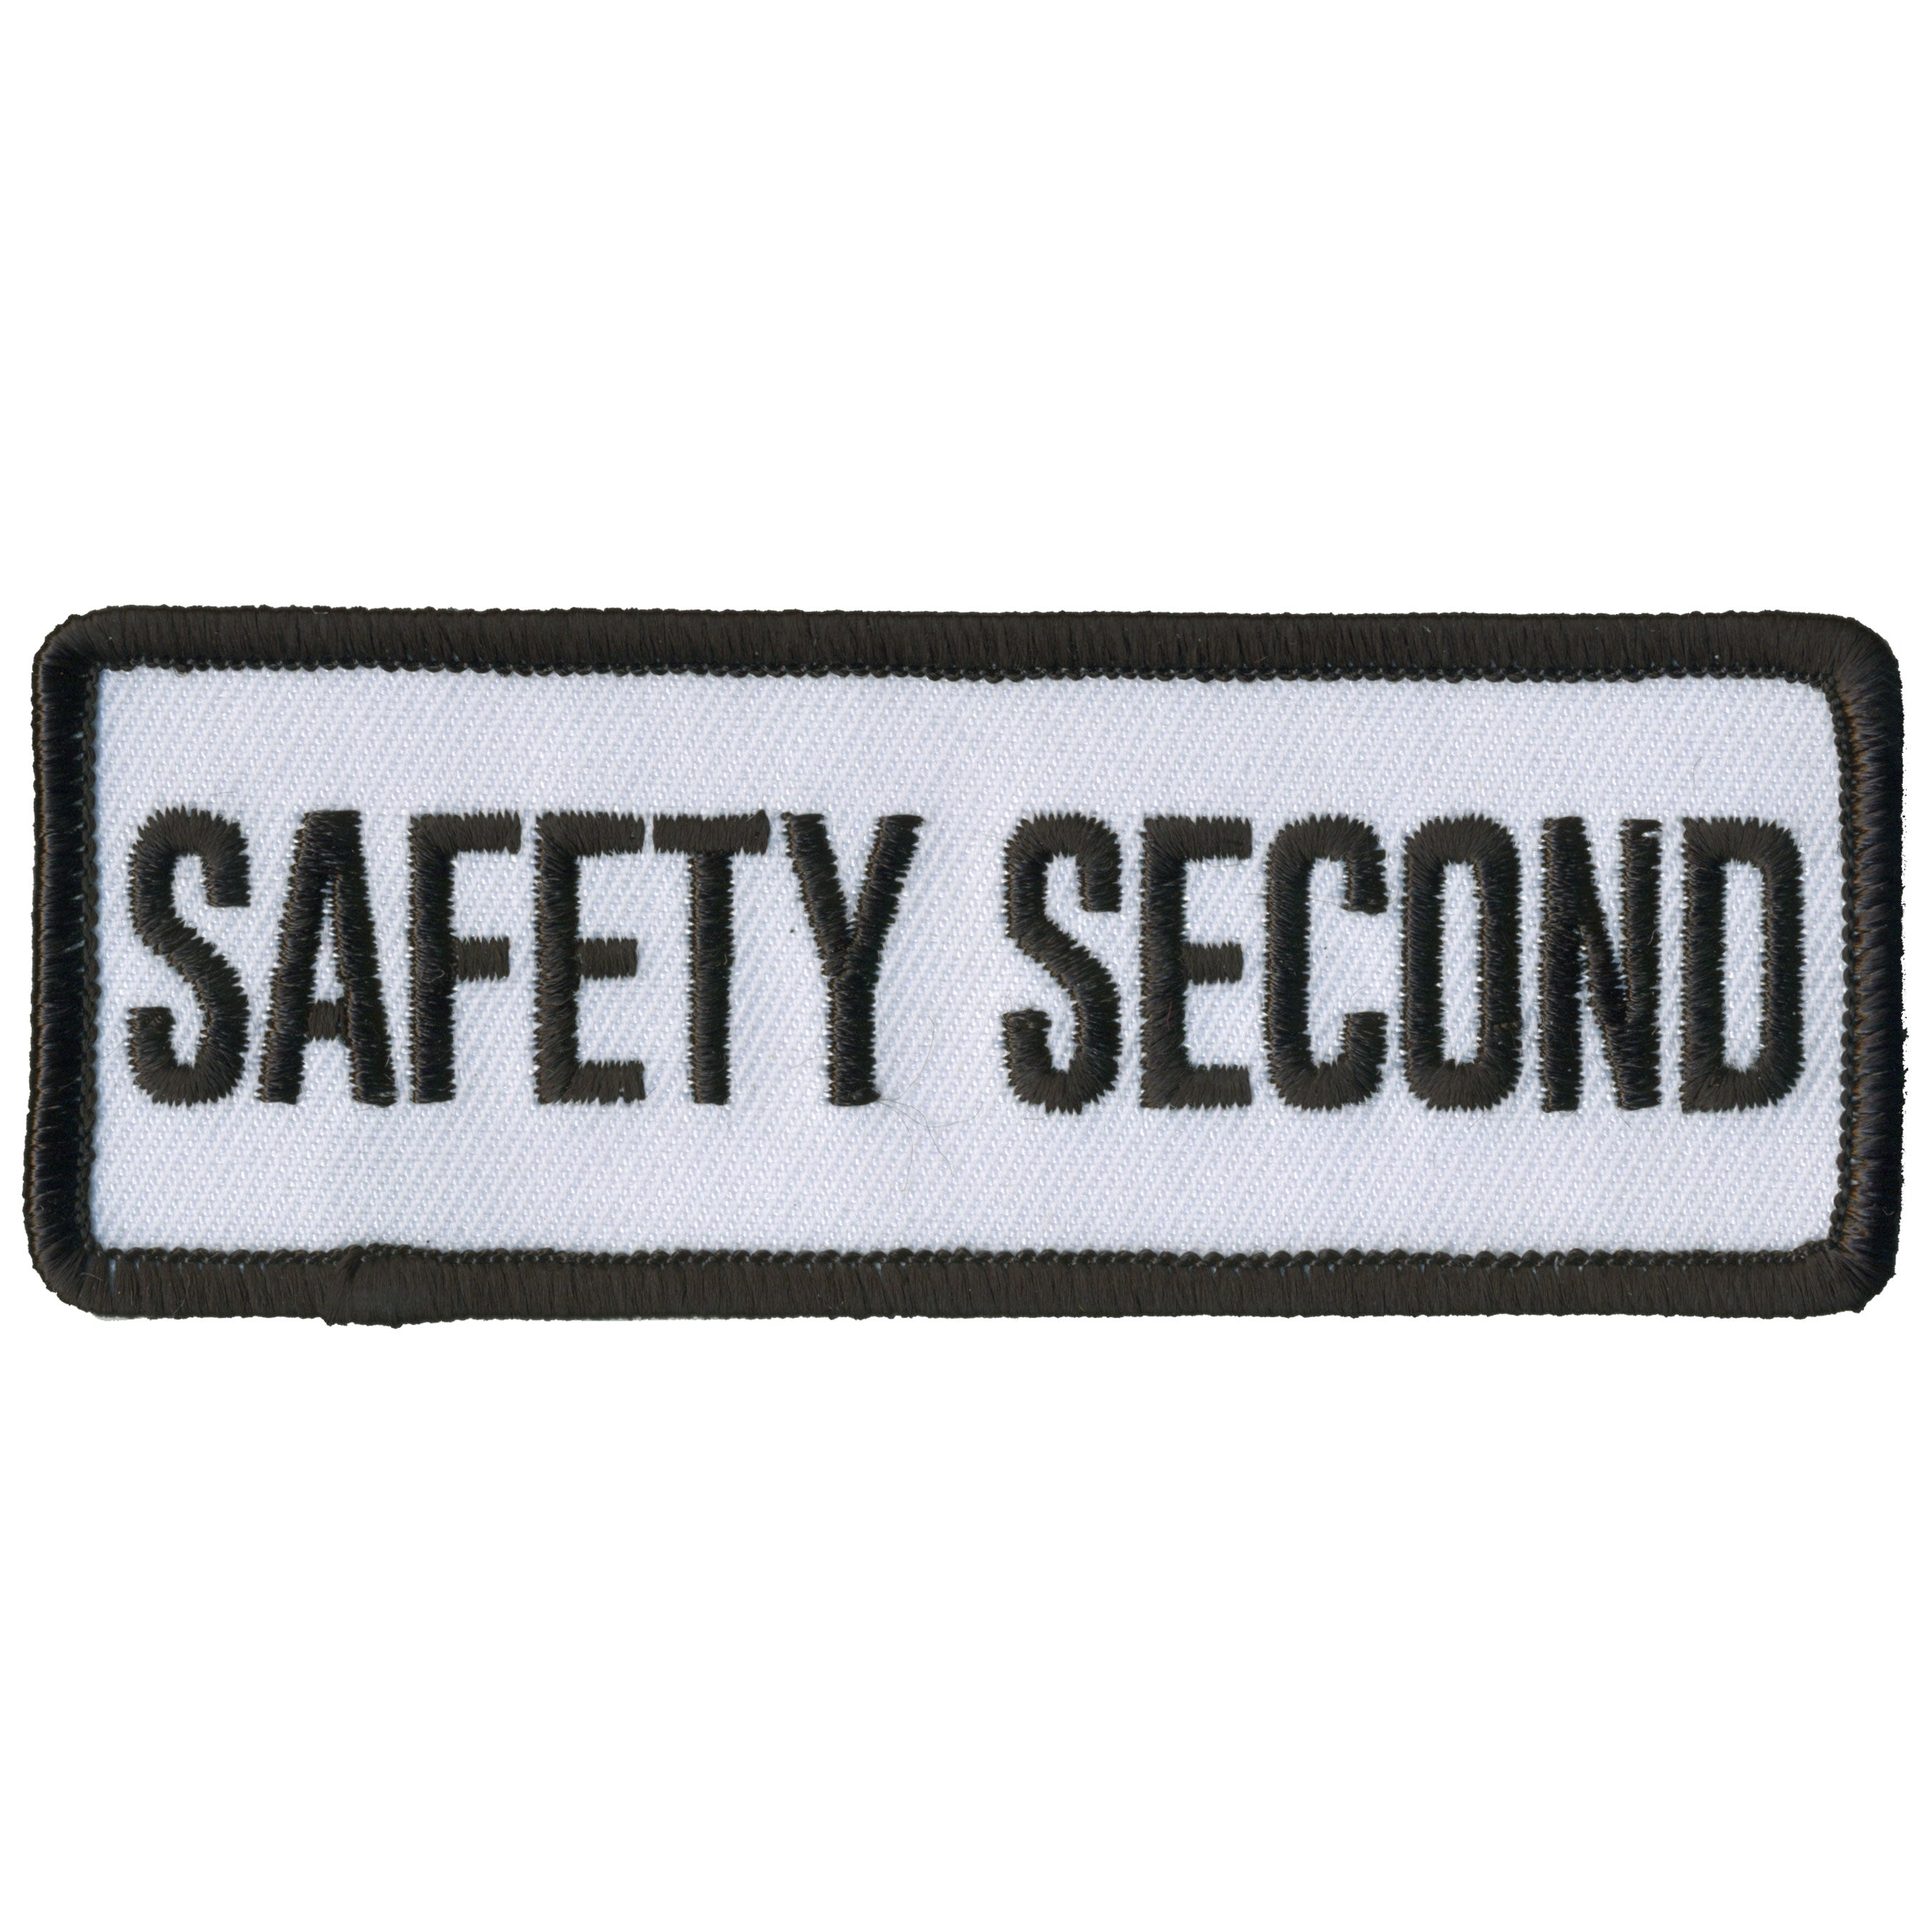 Hot Leathers Safety Second Patch